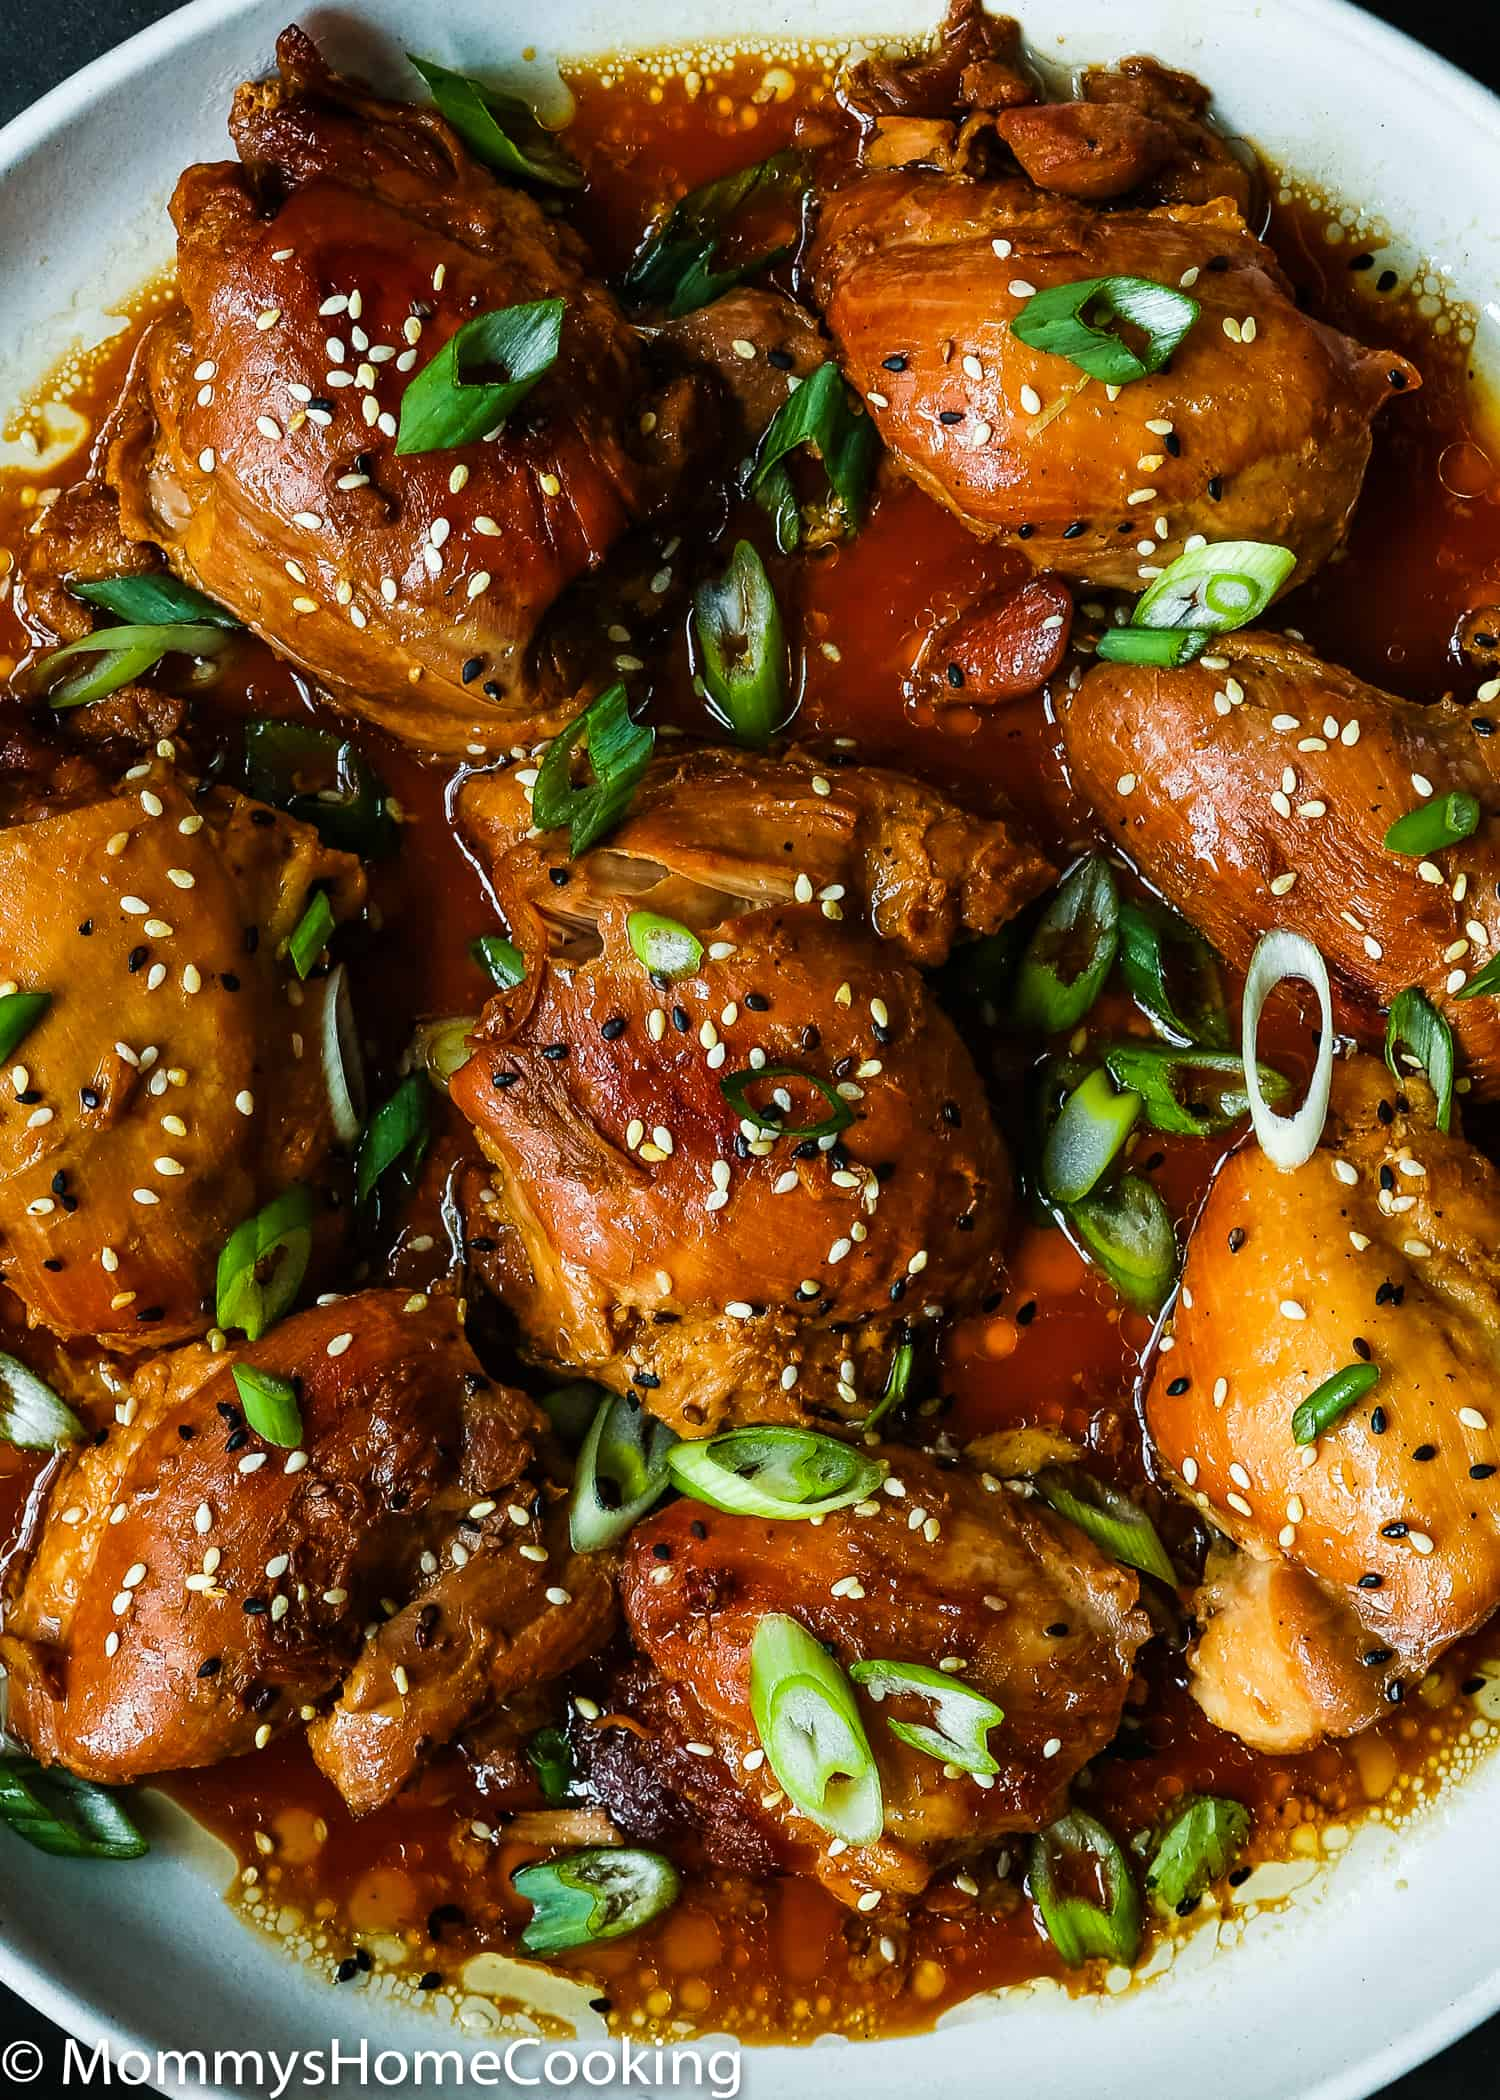 This Easy Instant Pot Teriyaki Chicken recipe is perfect for your weeknight's dinner repertoire! Easy to make with just a few ingredients, this flavorful chicken will quickly become a family favorite. https://mommyshomecooking.com